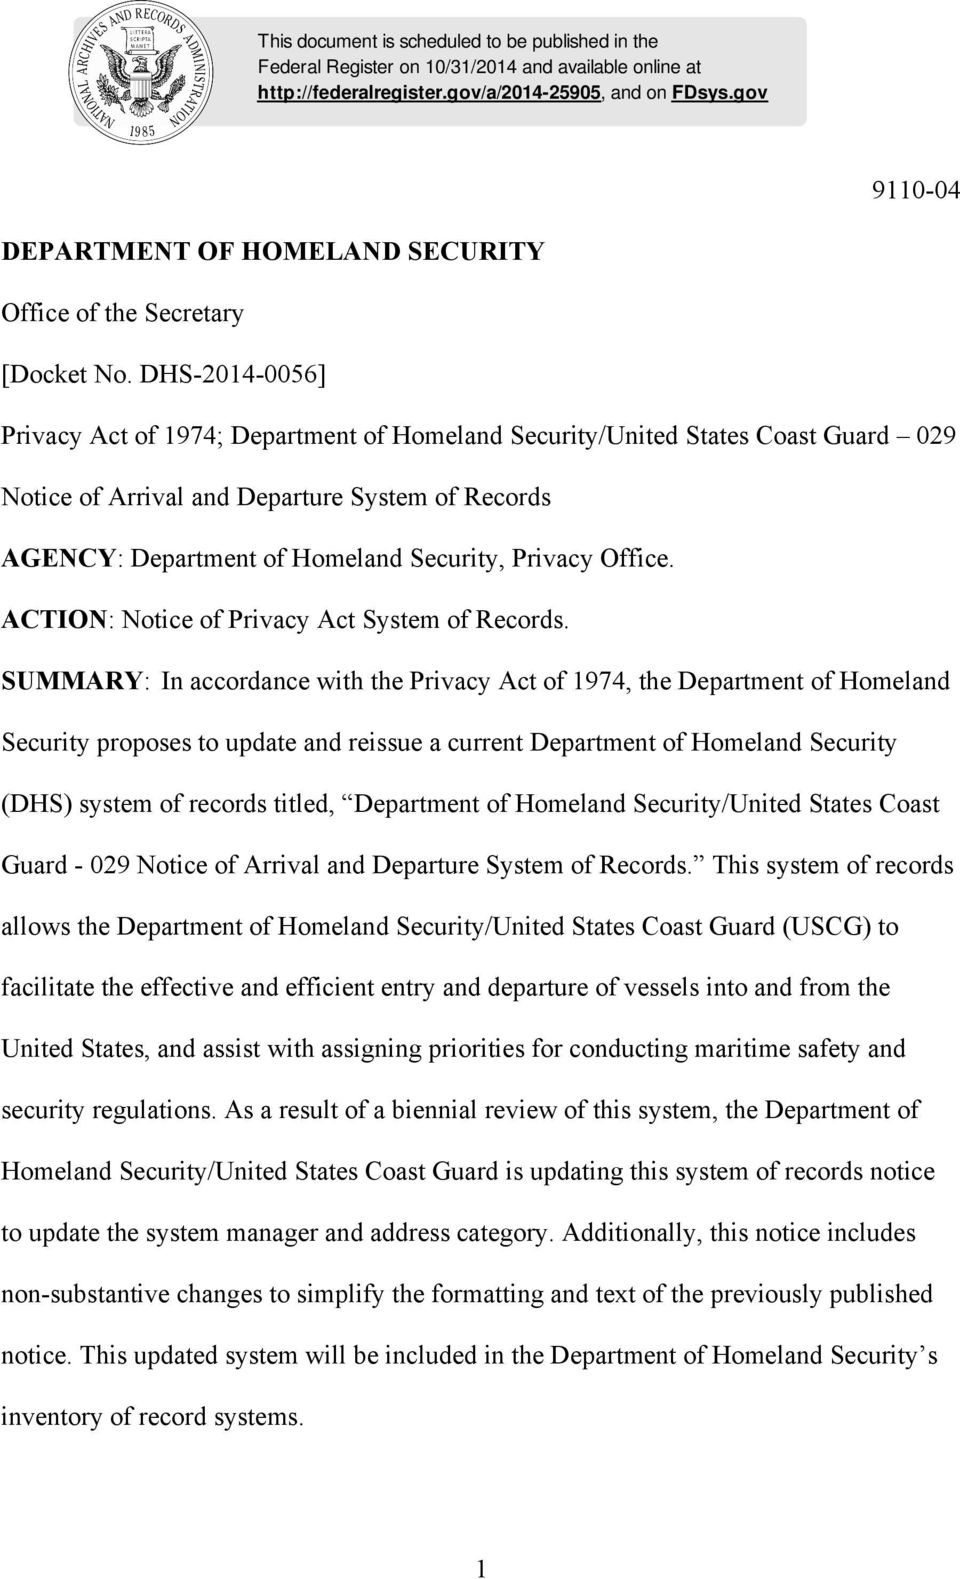 DHS-2014-0056] Privacy Act of 1974; Department of Homeland Security/United States Coast Guard 029 Notice of Arrival and Departure System of Records AGENCY: Department of Homeland Security, Privacy